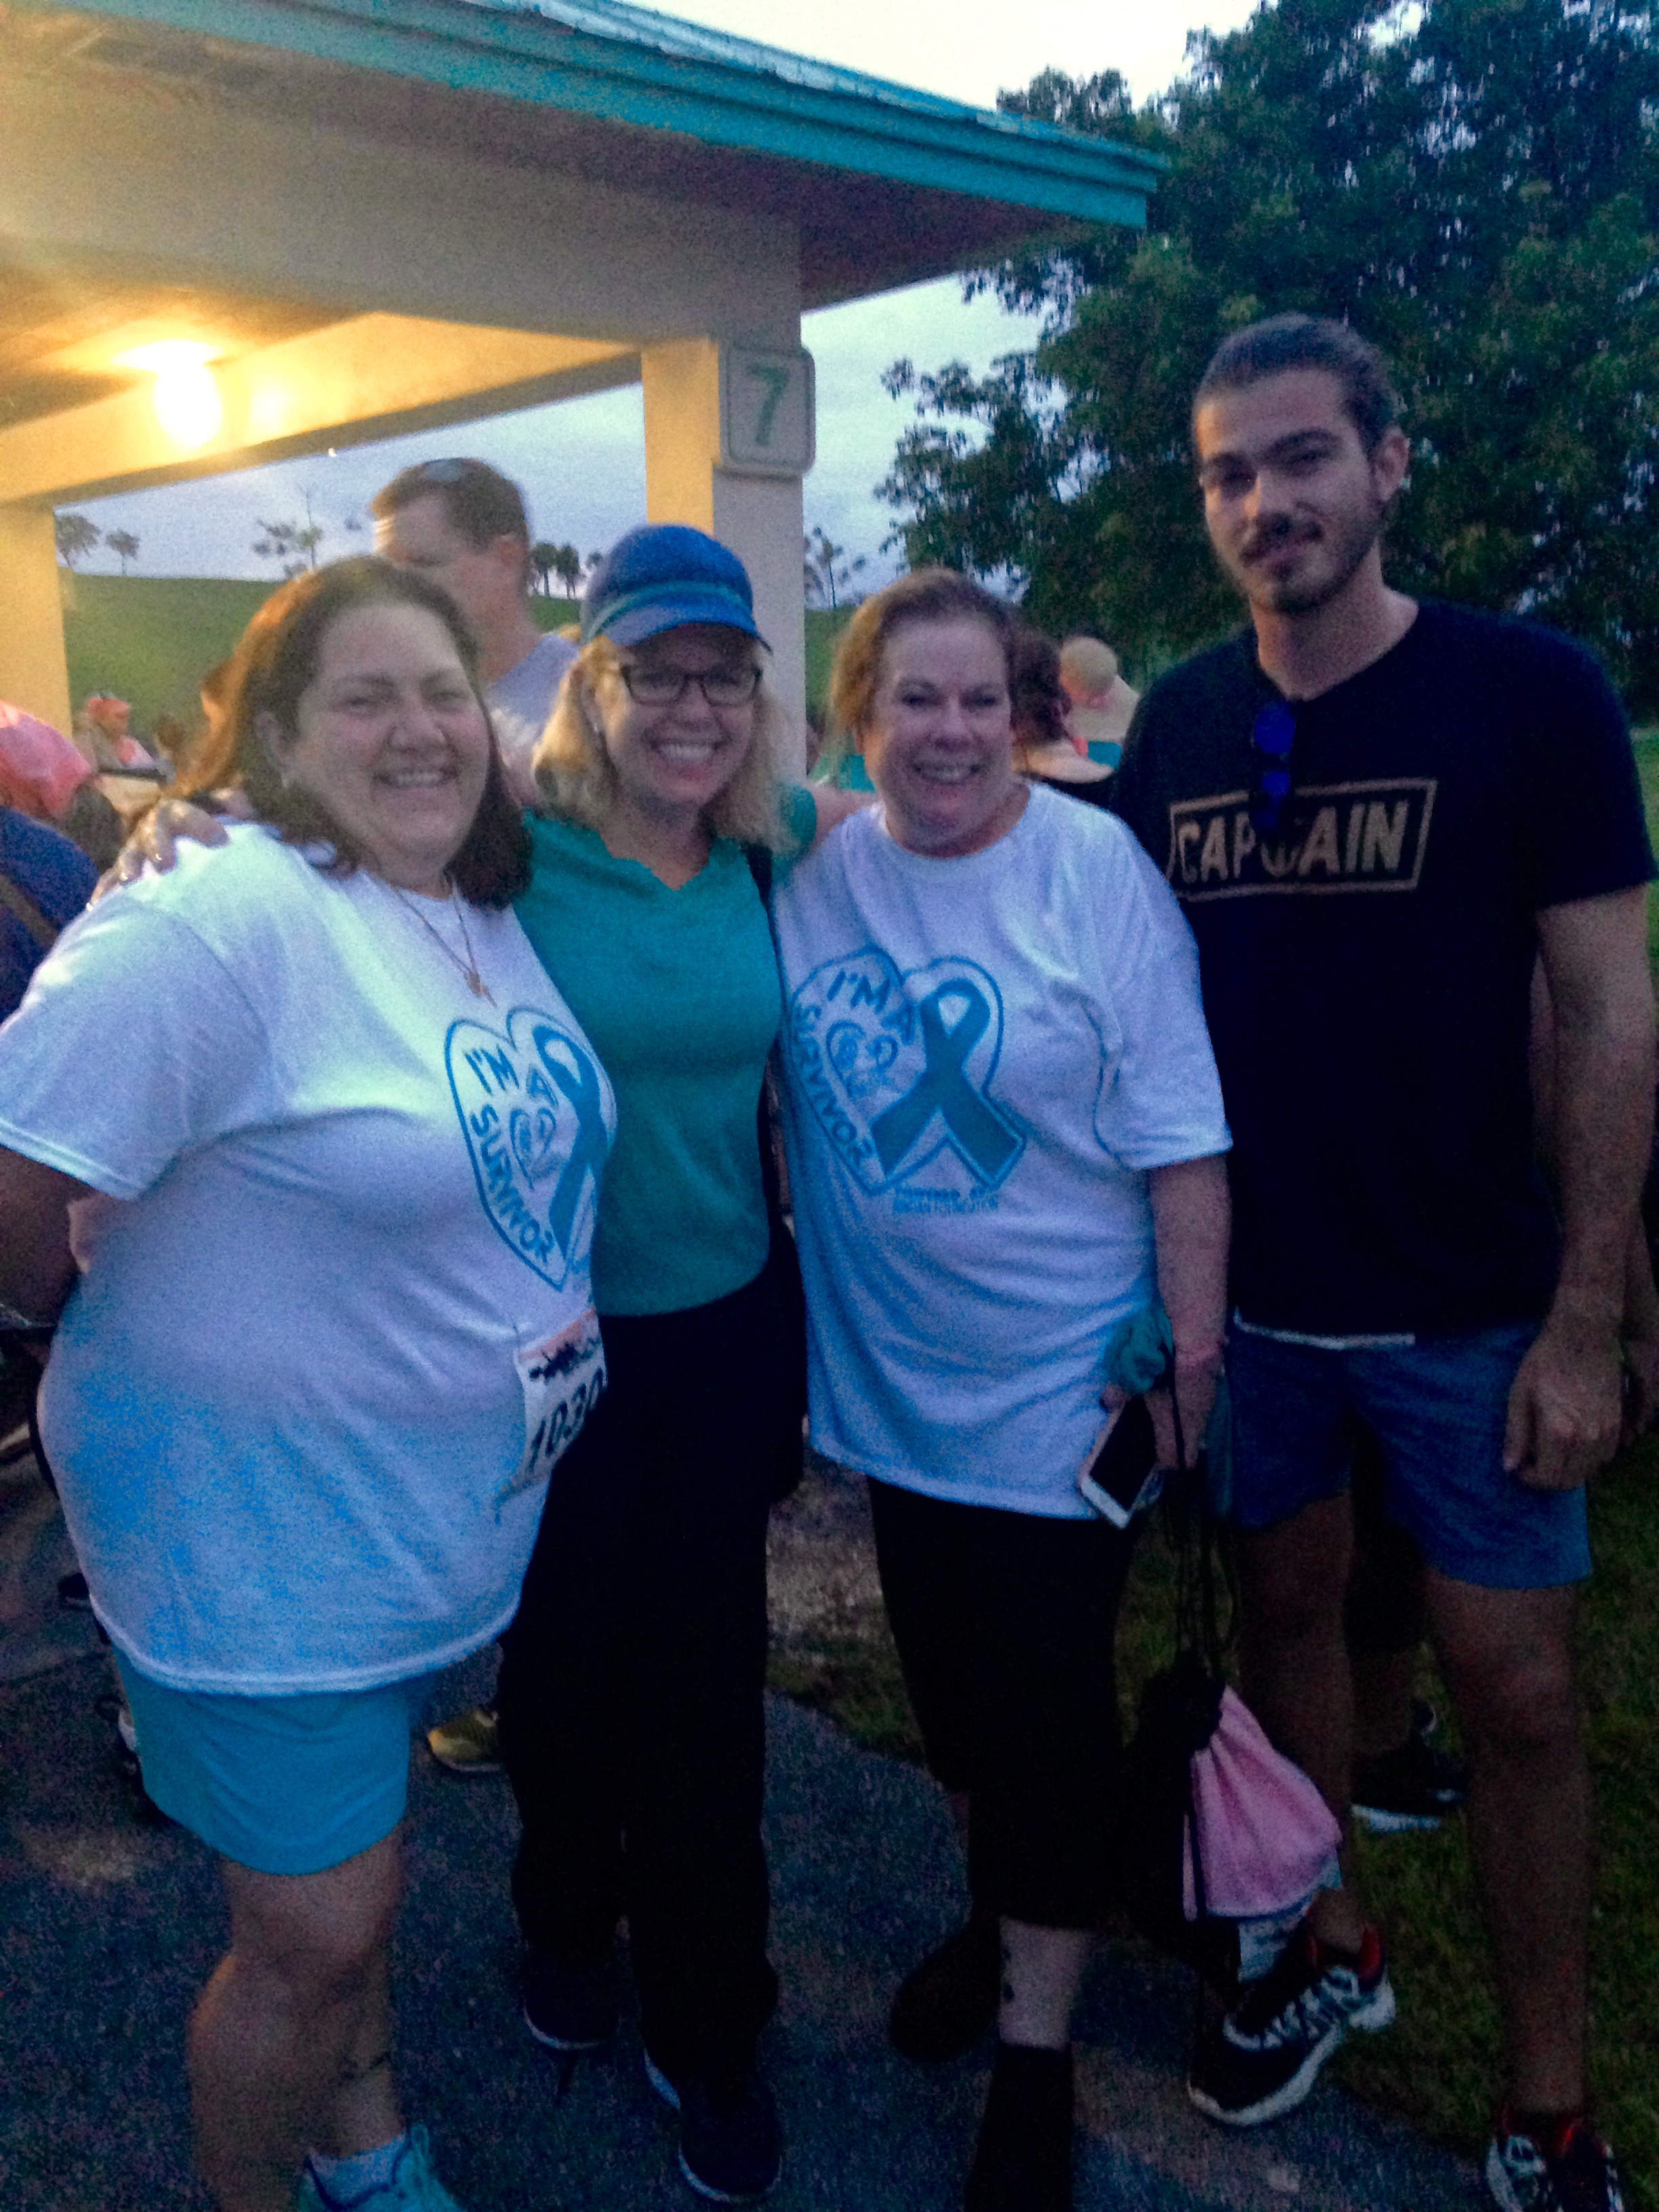 FullSizeRender 007 - Florida Teal 5K Run & Fun